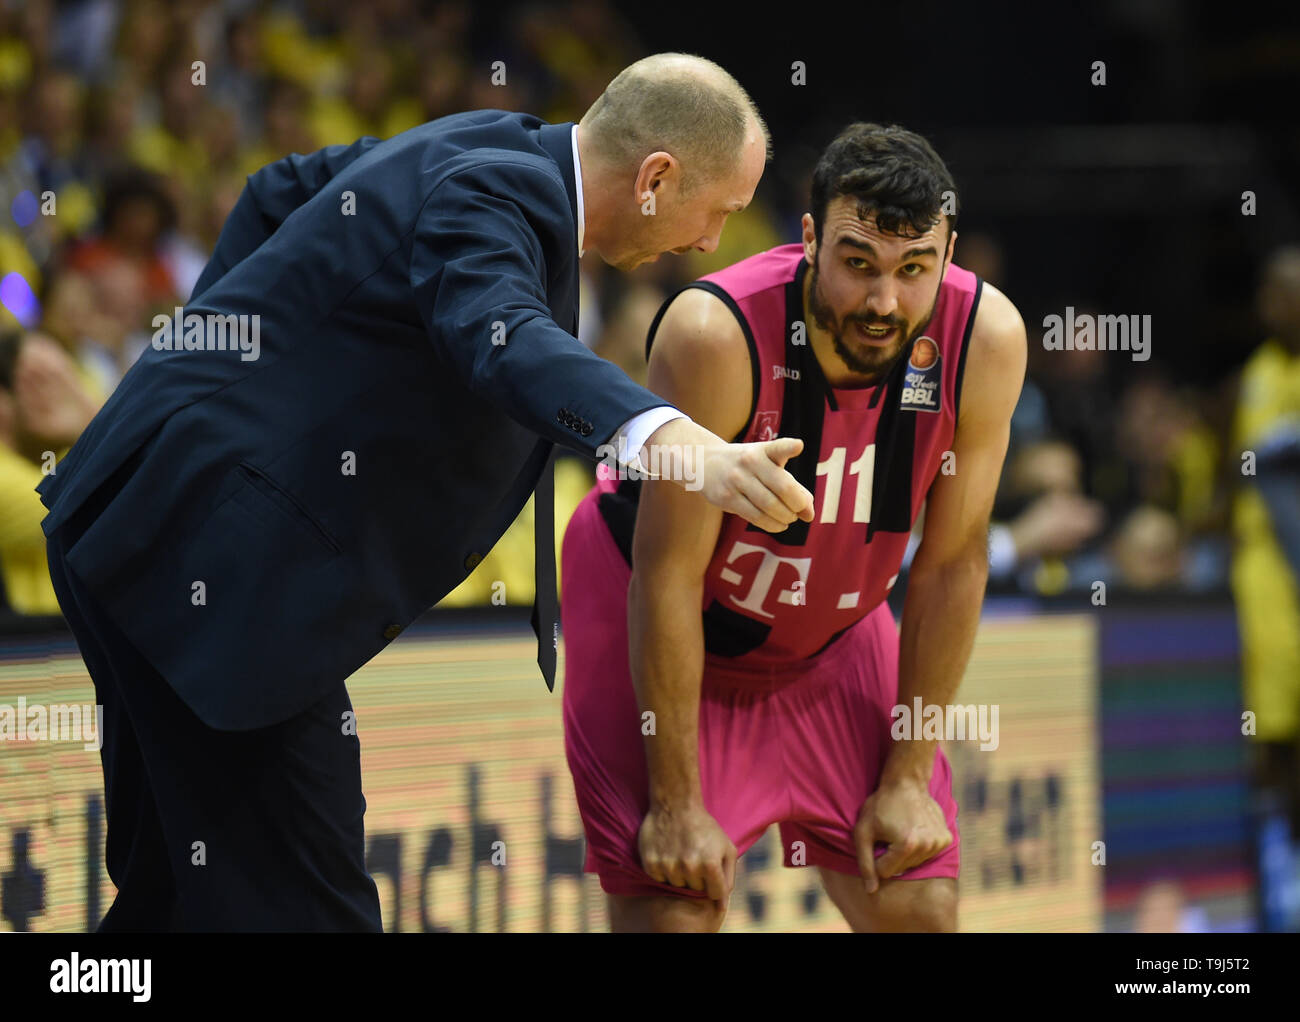 Oldenburg, Germany. 19th May, 2019. Basketball: Bundesliga, EWE Baskets Oldenburg - Telekom Baskets Bonn, championship round, quarter finals, 1st matchday. Bonn coach Chris O'Shea talks to his player Anthony DiLeo on the sidelines. Credit: Carmen Jaspersen/dpa/Alamy Live News - Stock Image